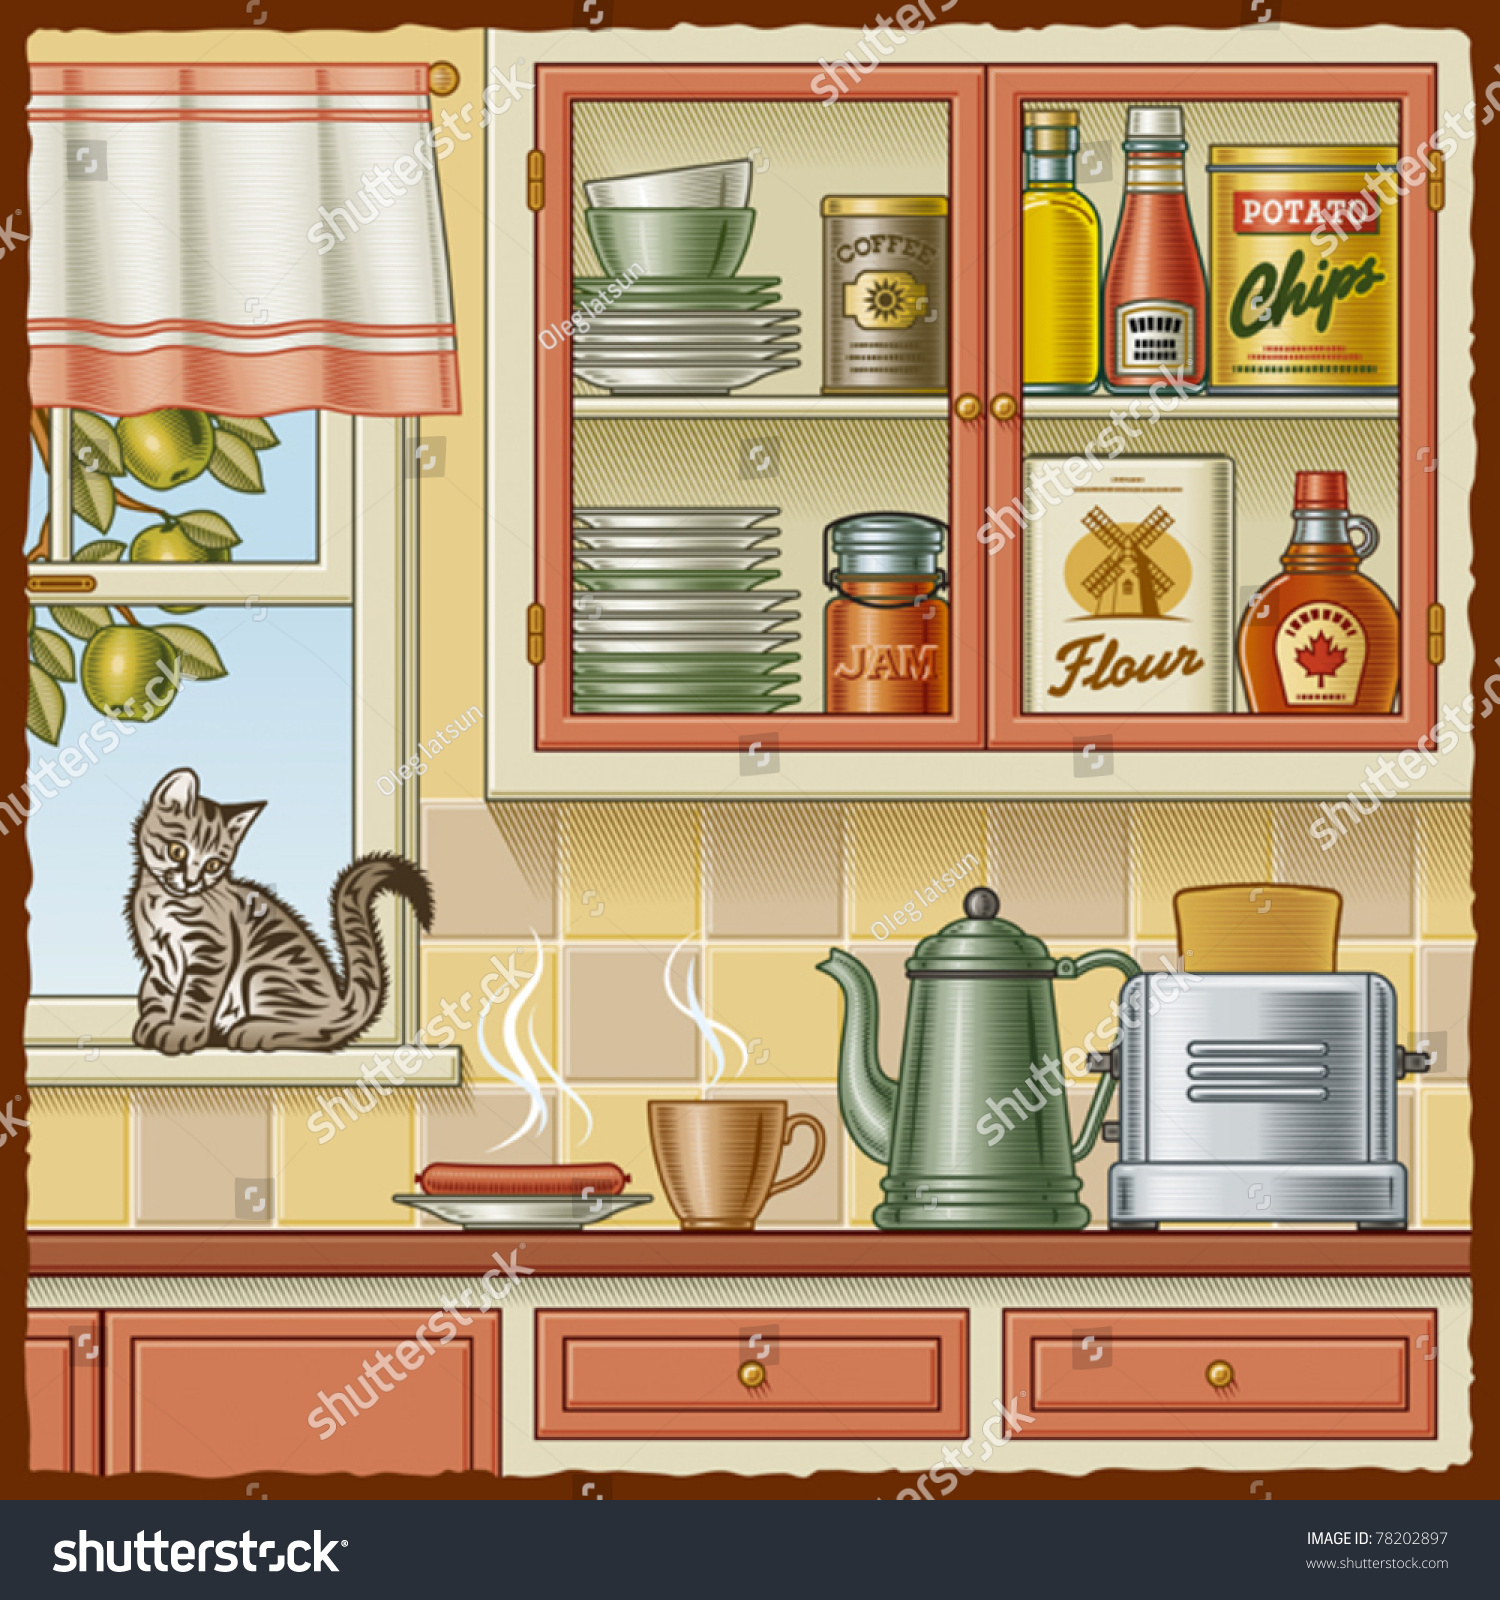 Retro Kitchen Retro Kitchen Vector Stock Vector 78202897 Shutterstock